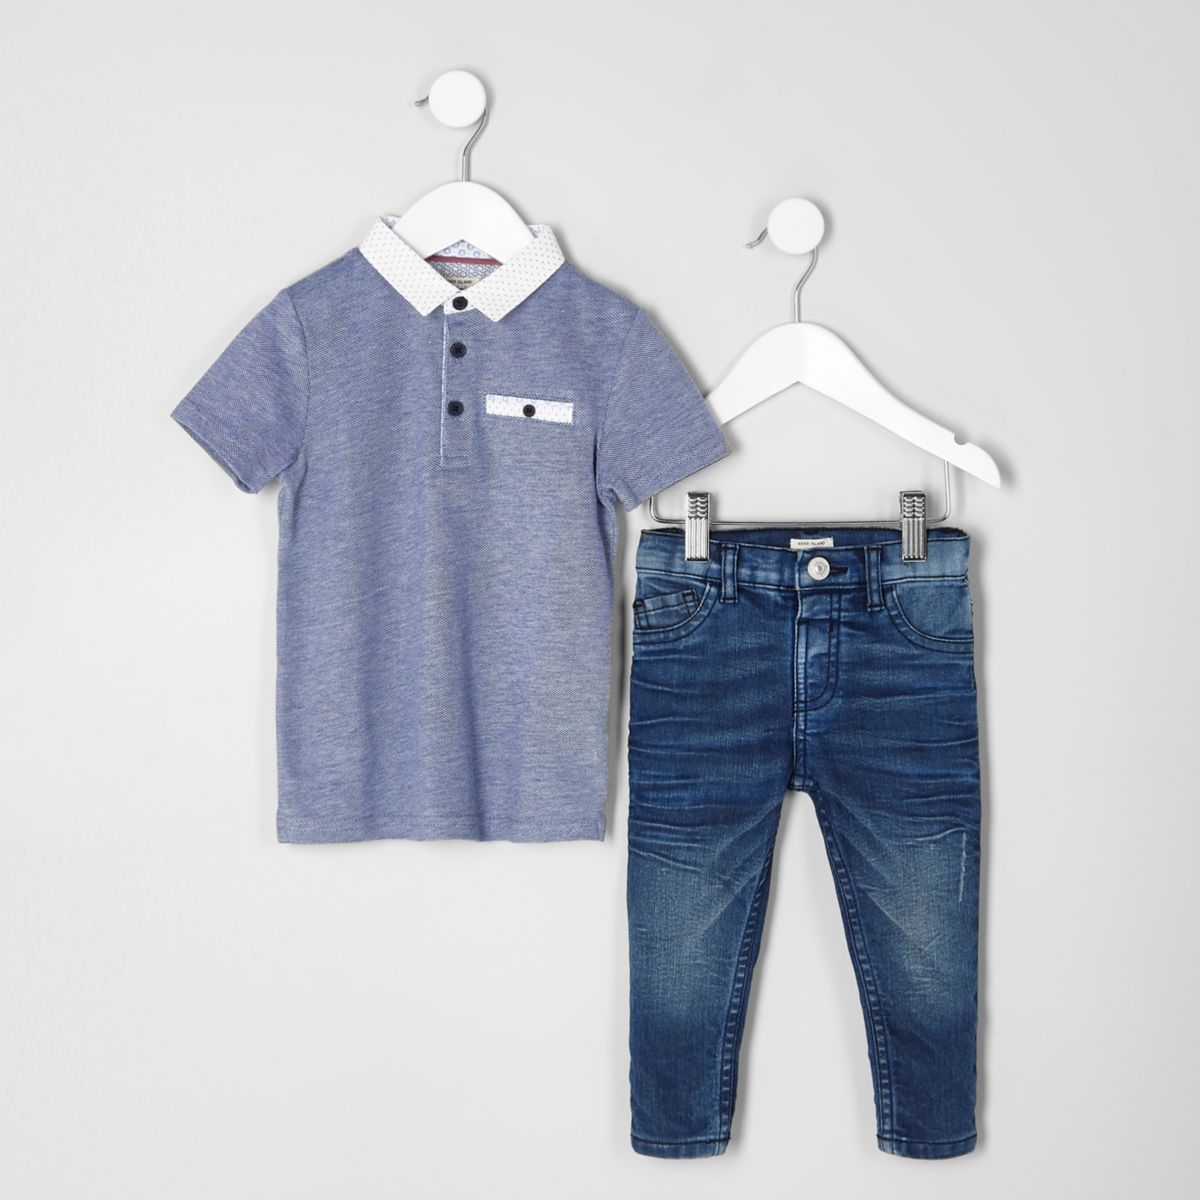 Mini boys navy polo and blue jeans outfit